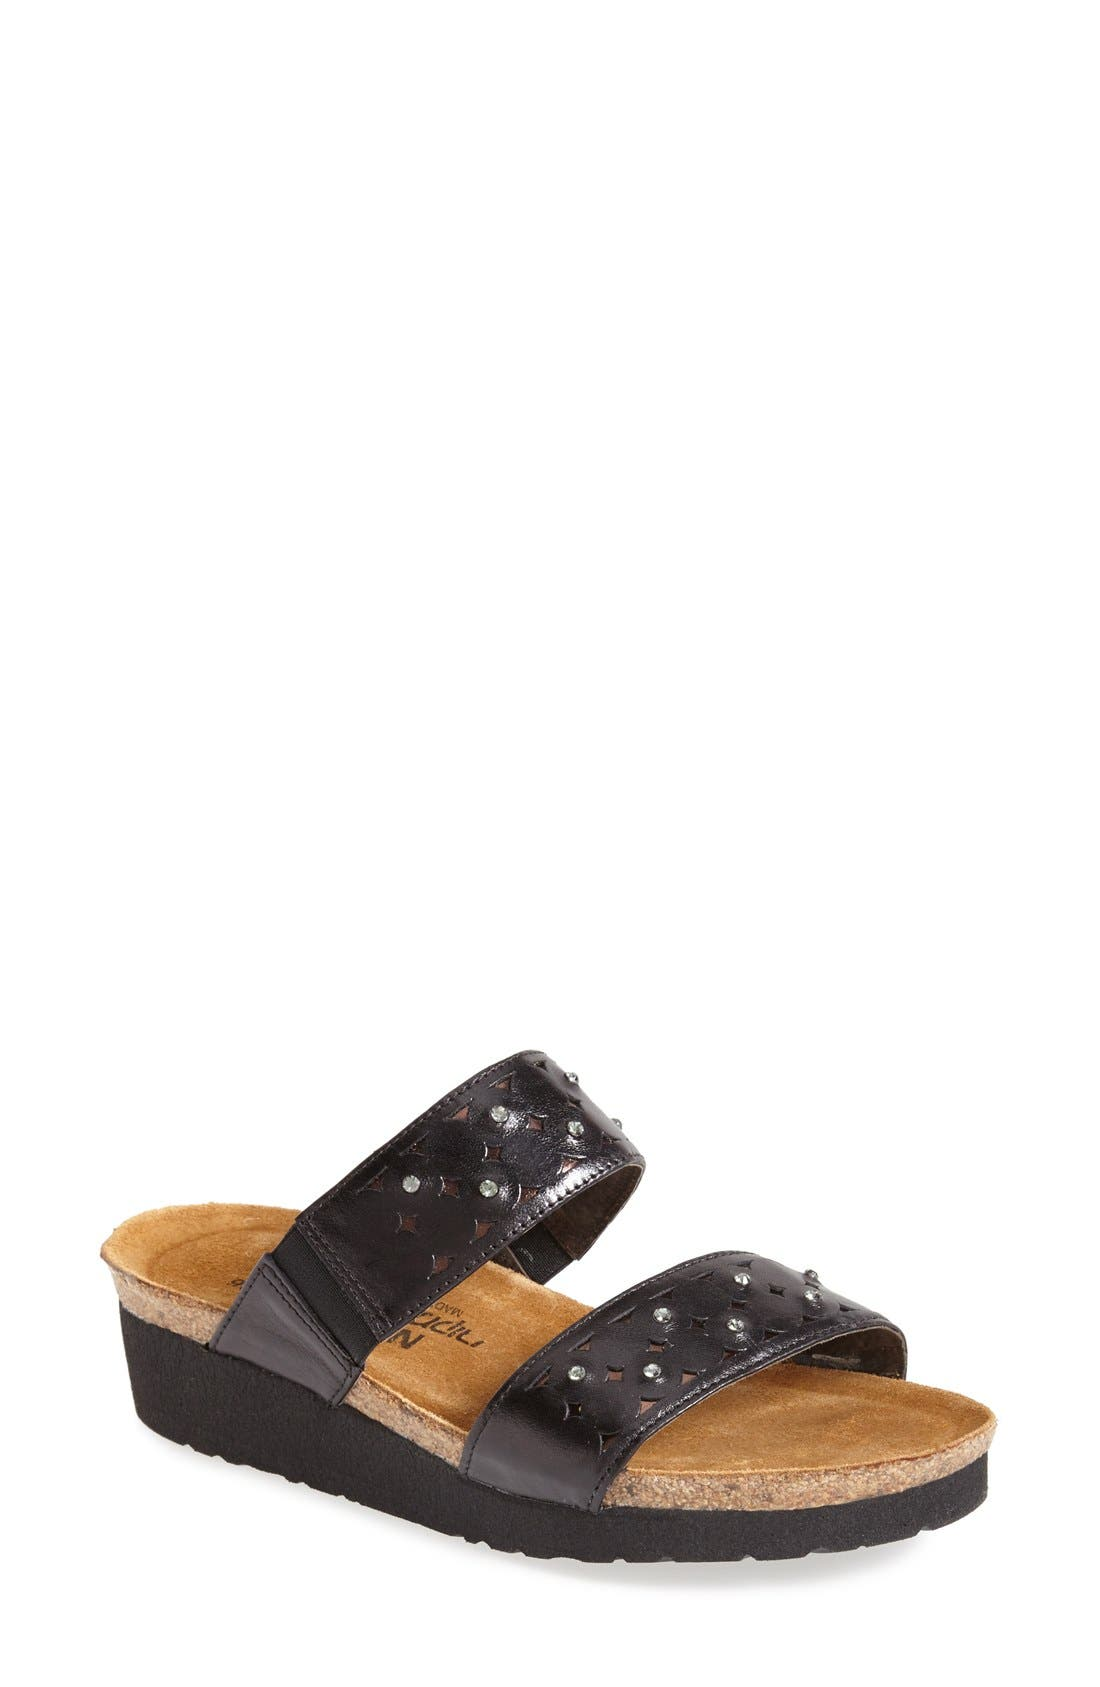 'Susan' Sandal,                         Main,                         color, BLACK/ BROWN